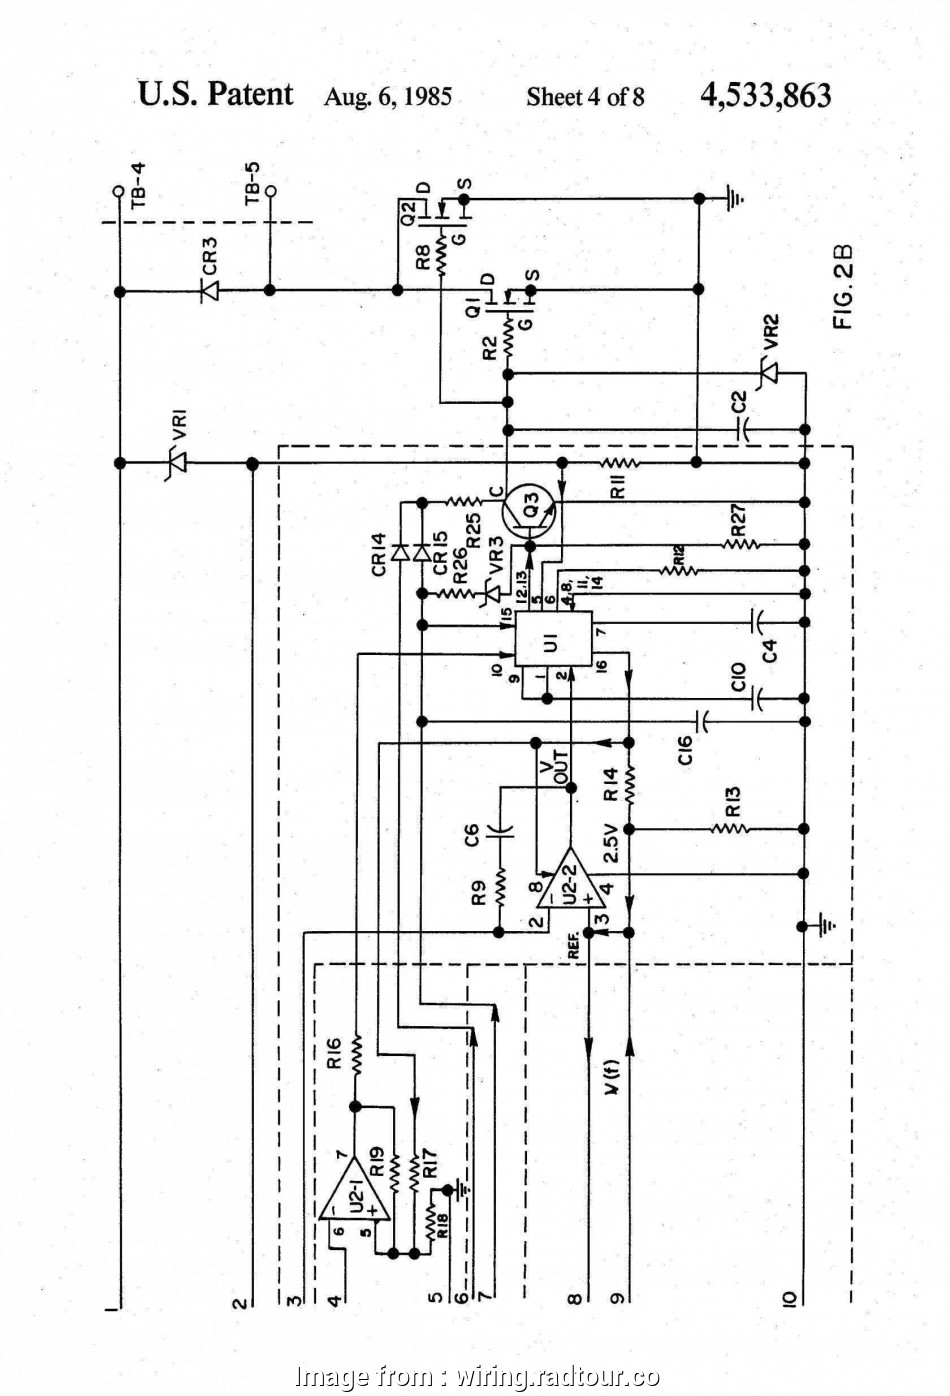 Basic Auto Electrical Wiring Top Cb160 Wiring Diagram